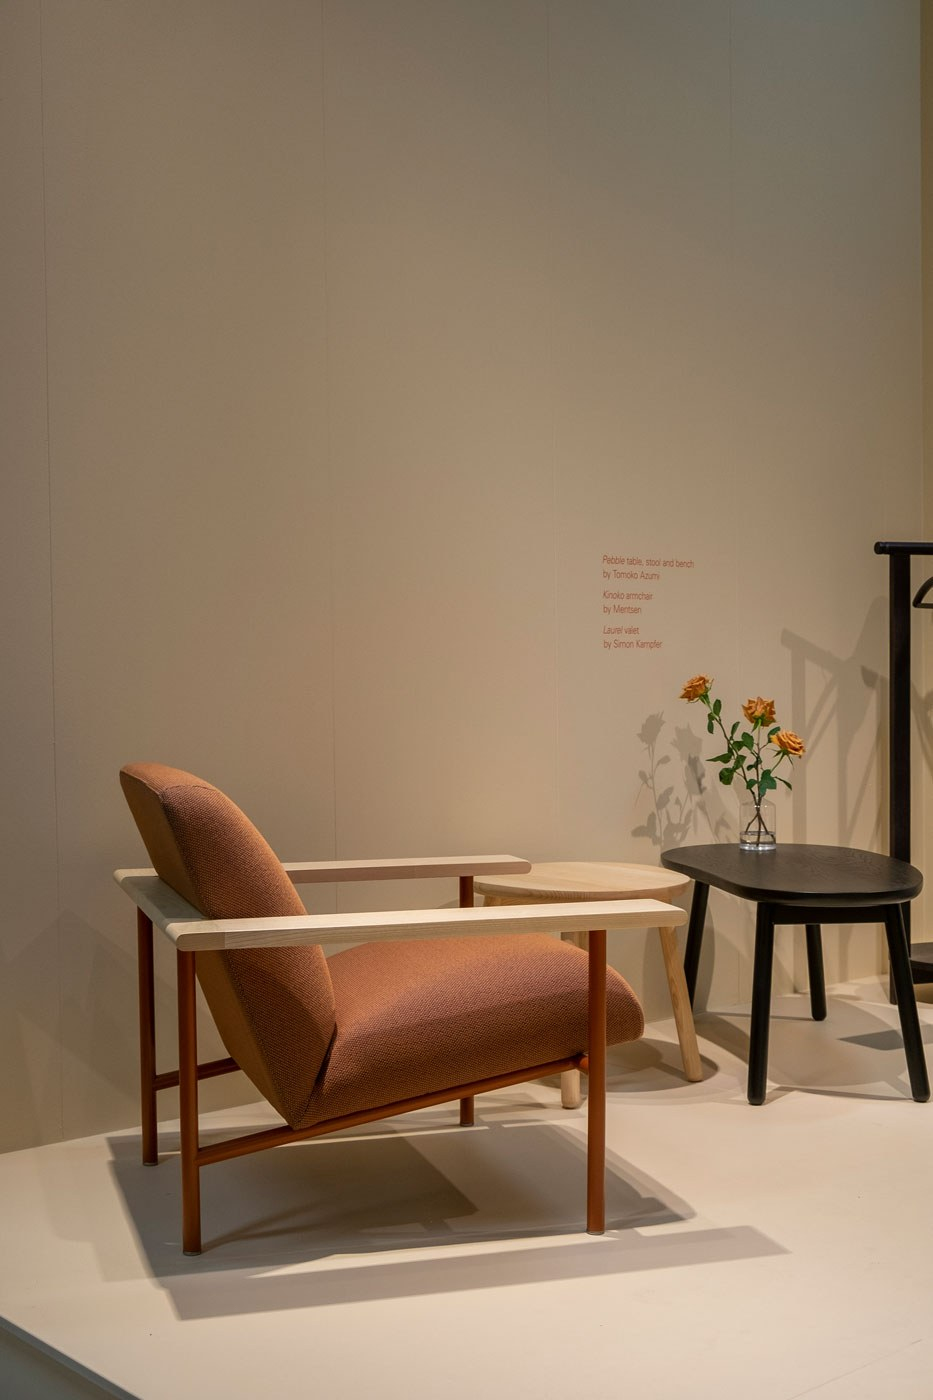 Kinoko chair with Pebble side tables